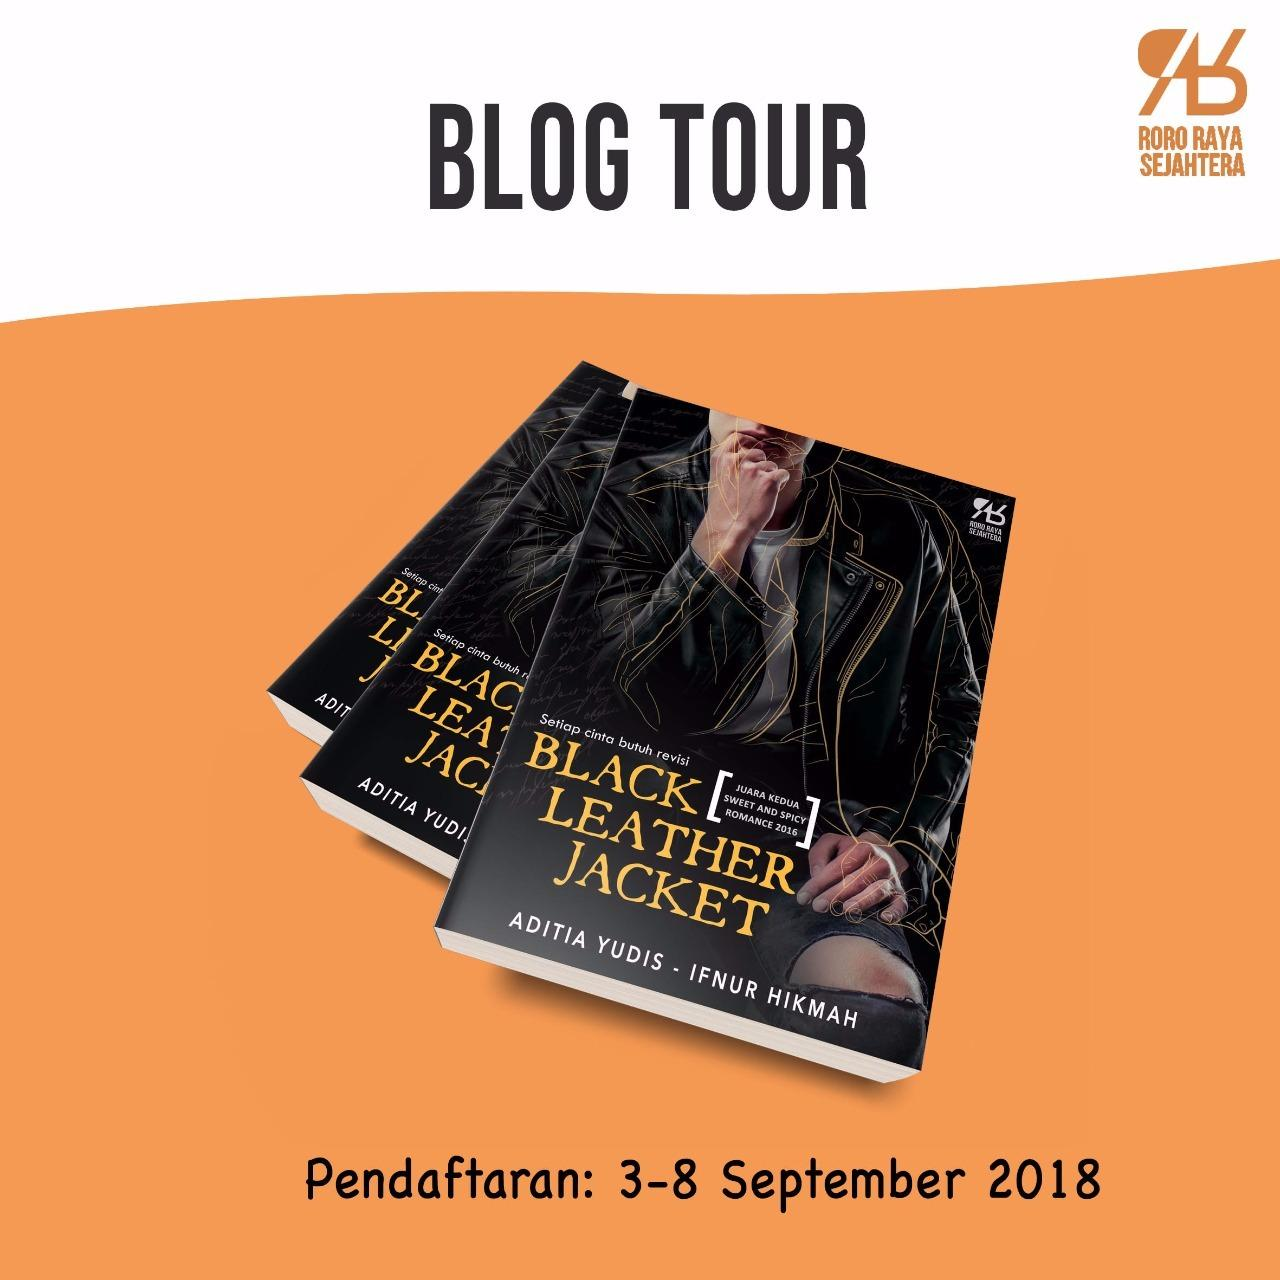 BLOG TOUR ON GOING